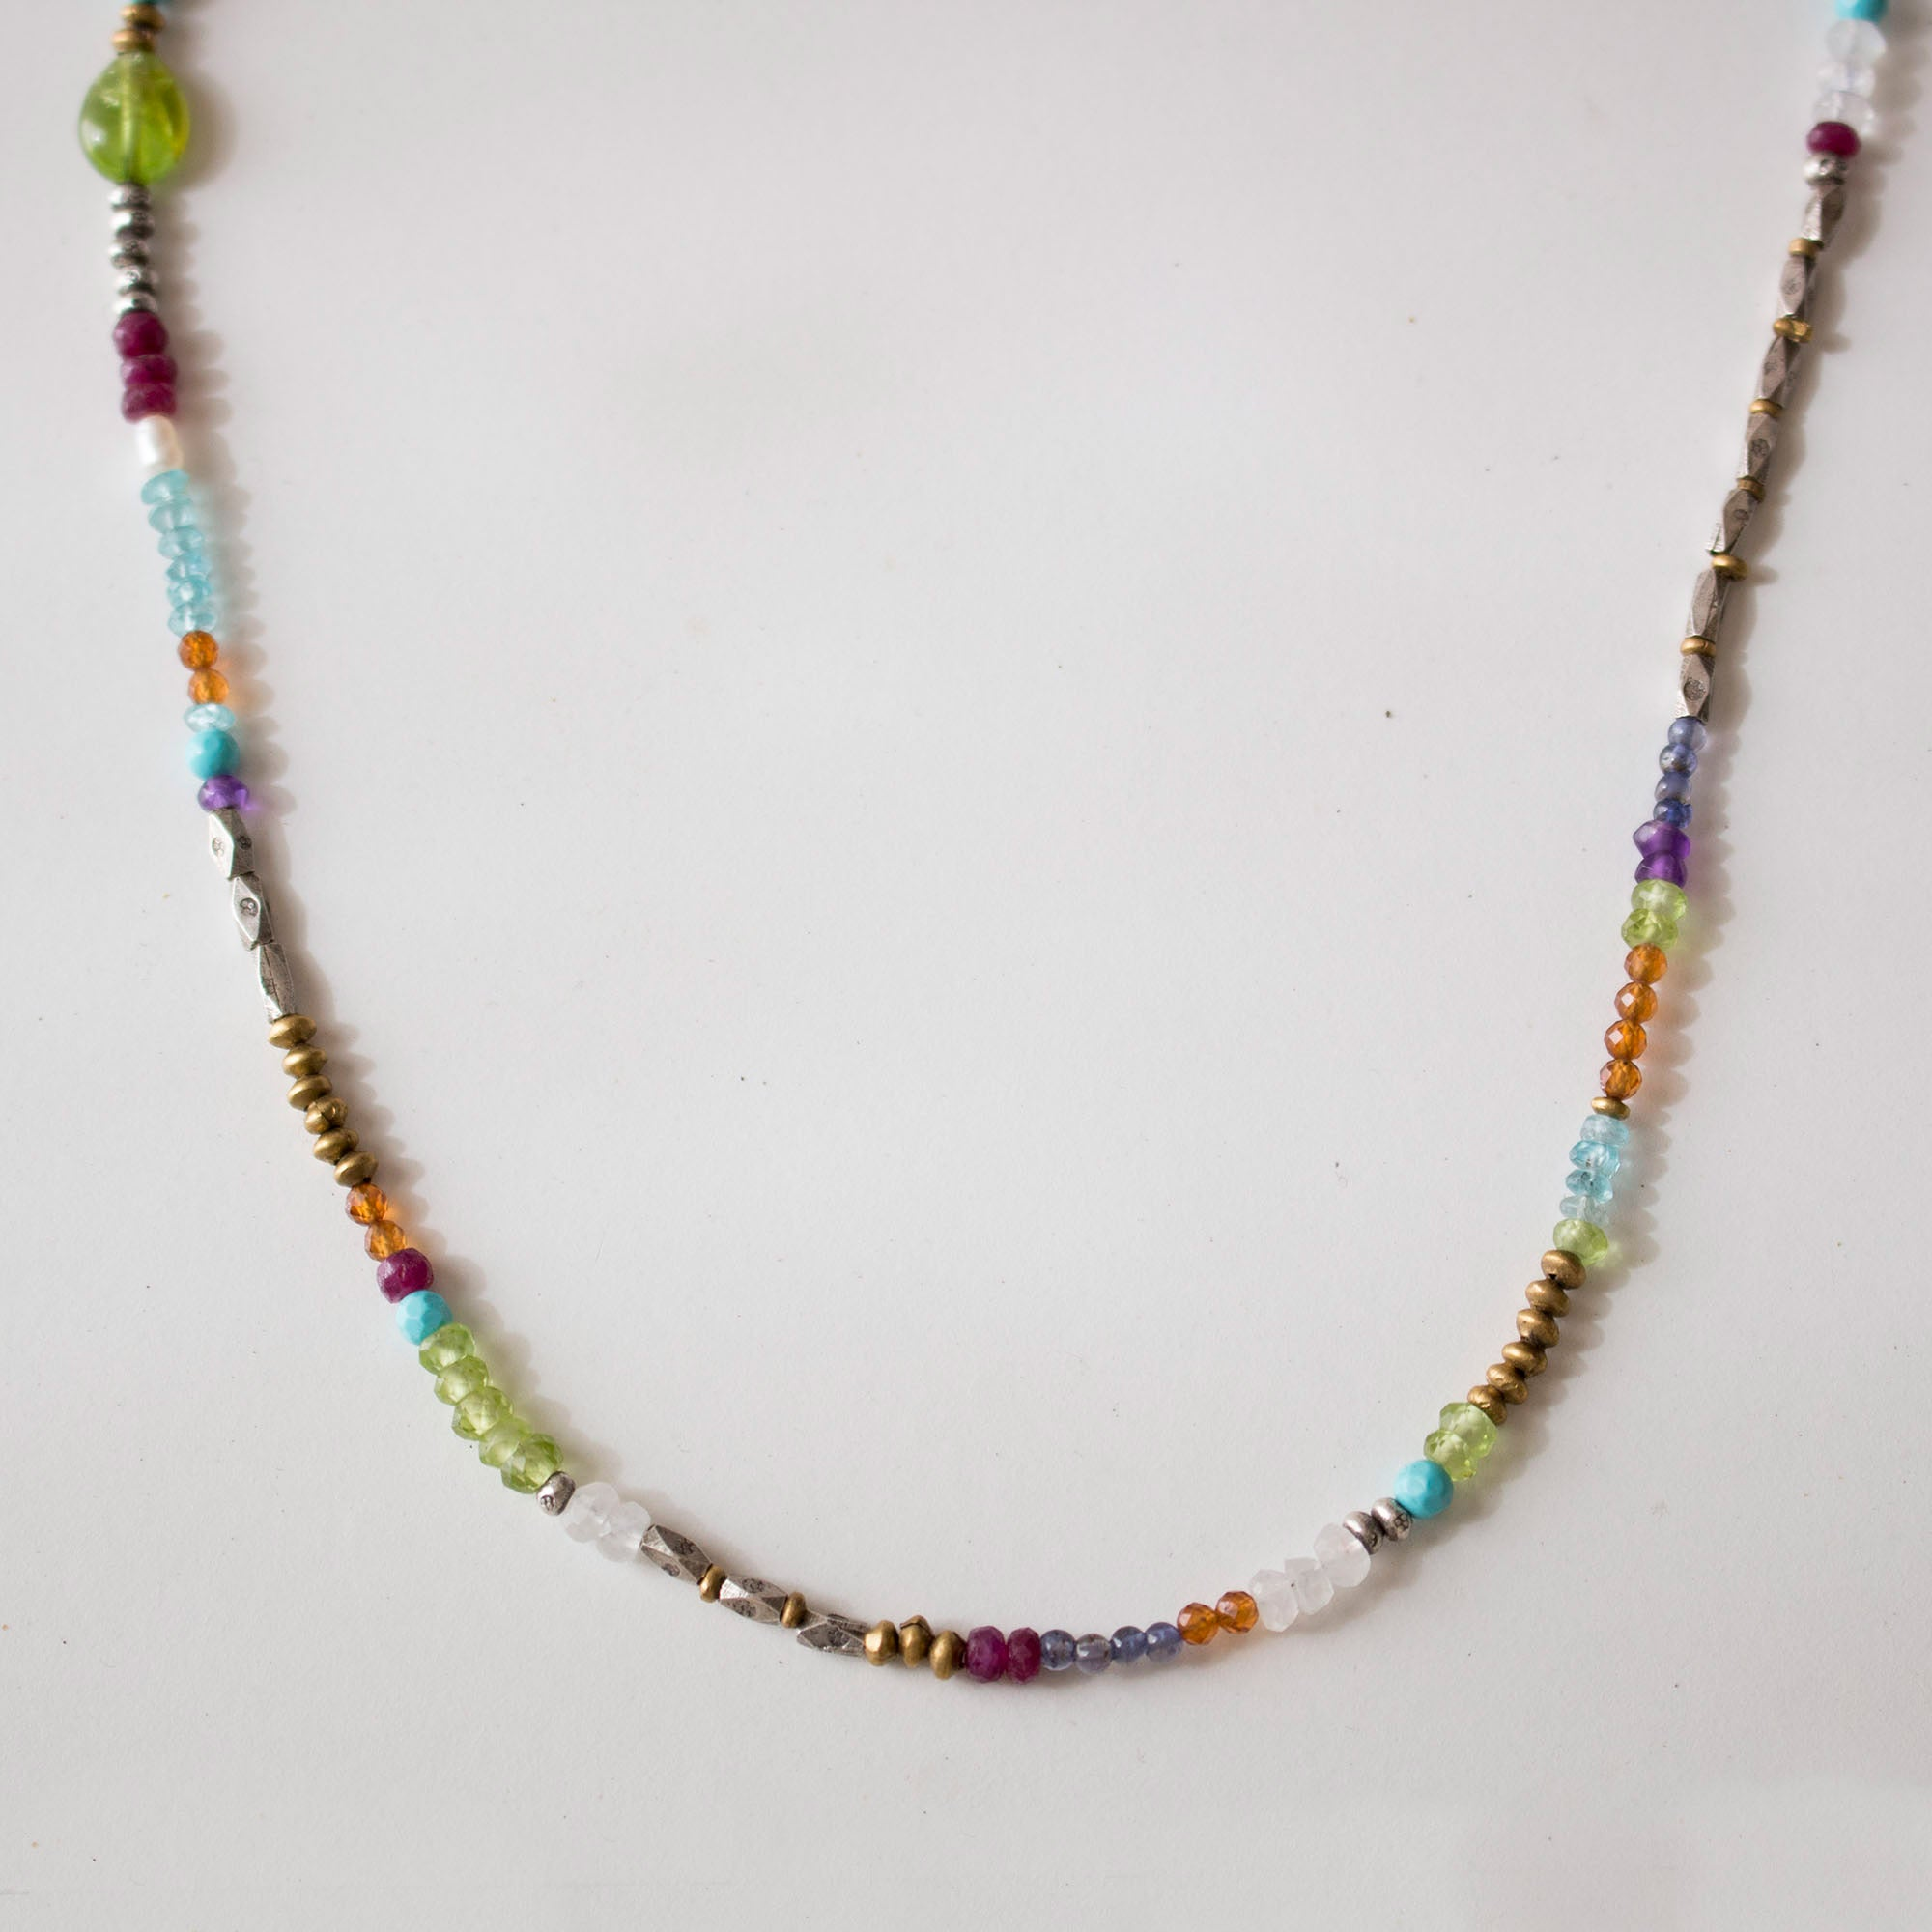 Ruby Bliss Necklace